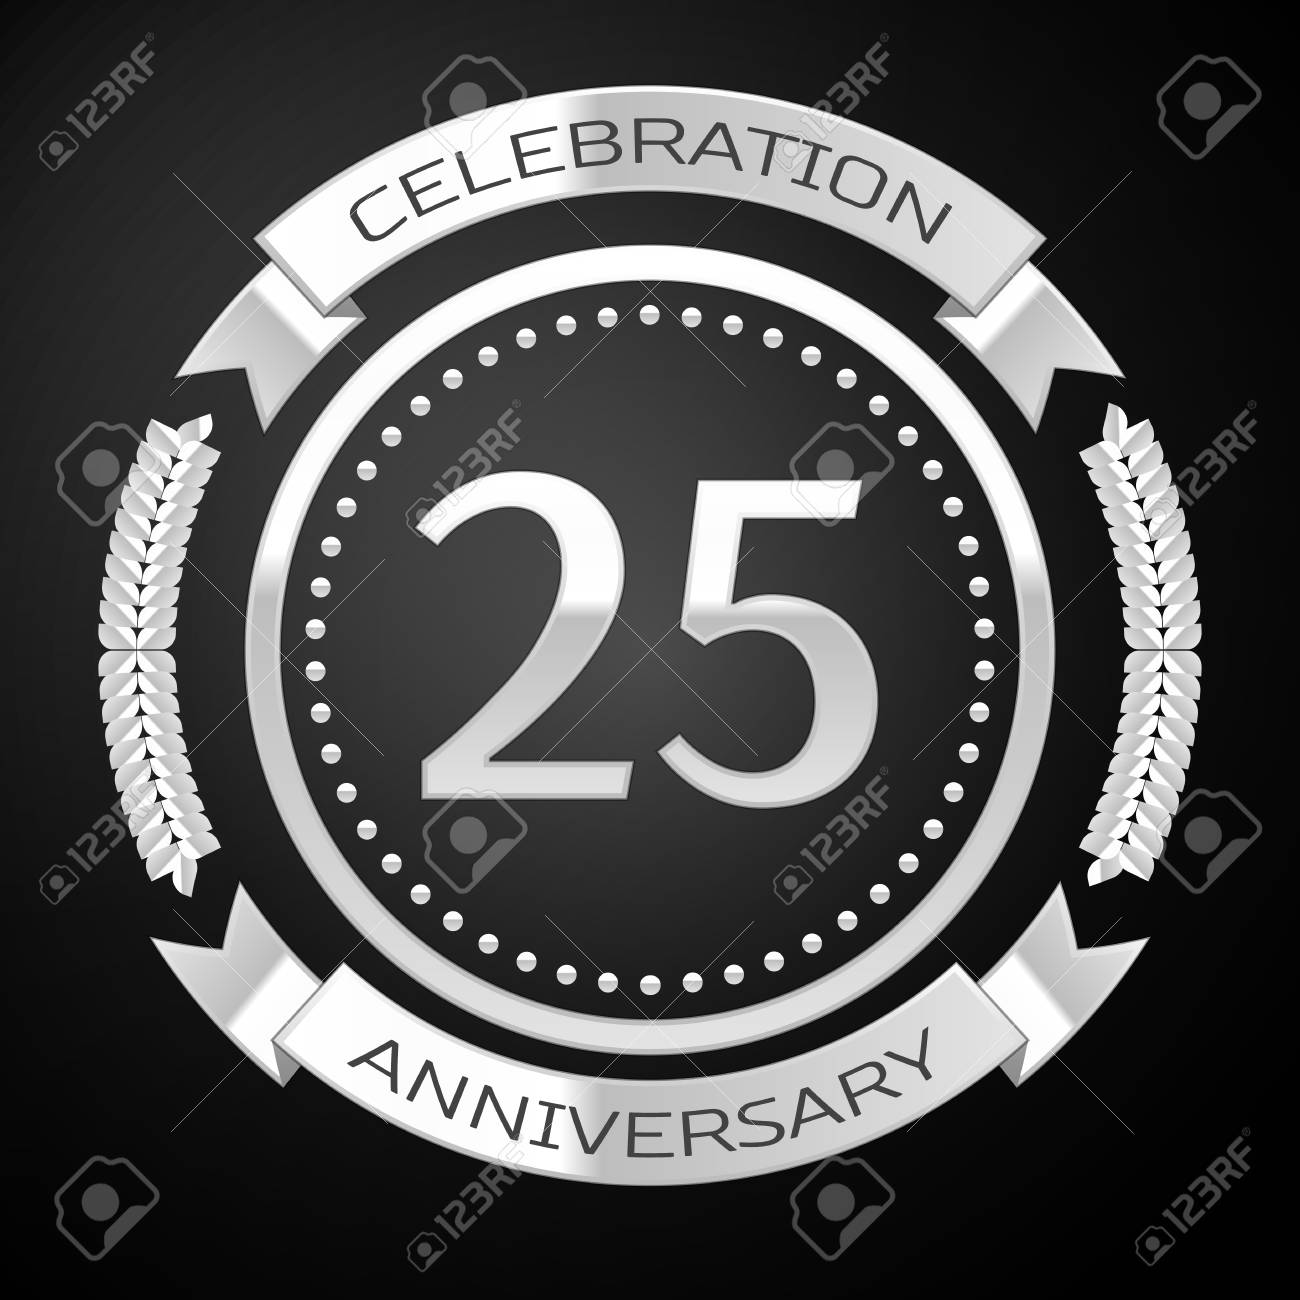 Twenty five years anniversary celebration with silver ring and ribbon on black background. Vector illustration - 67317854